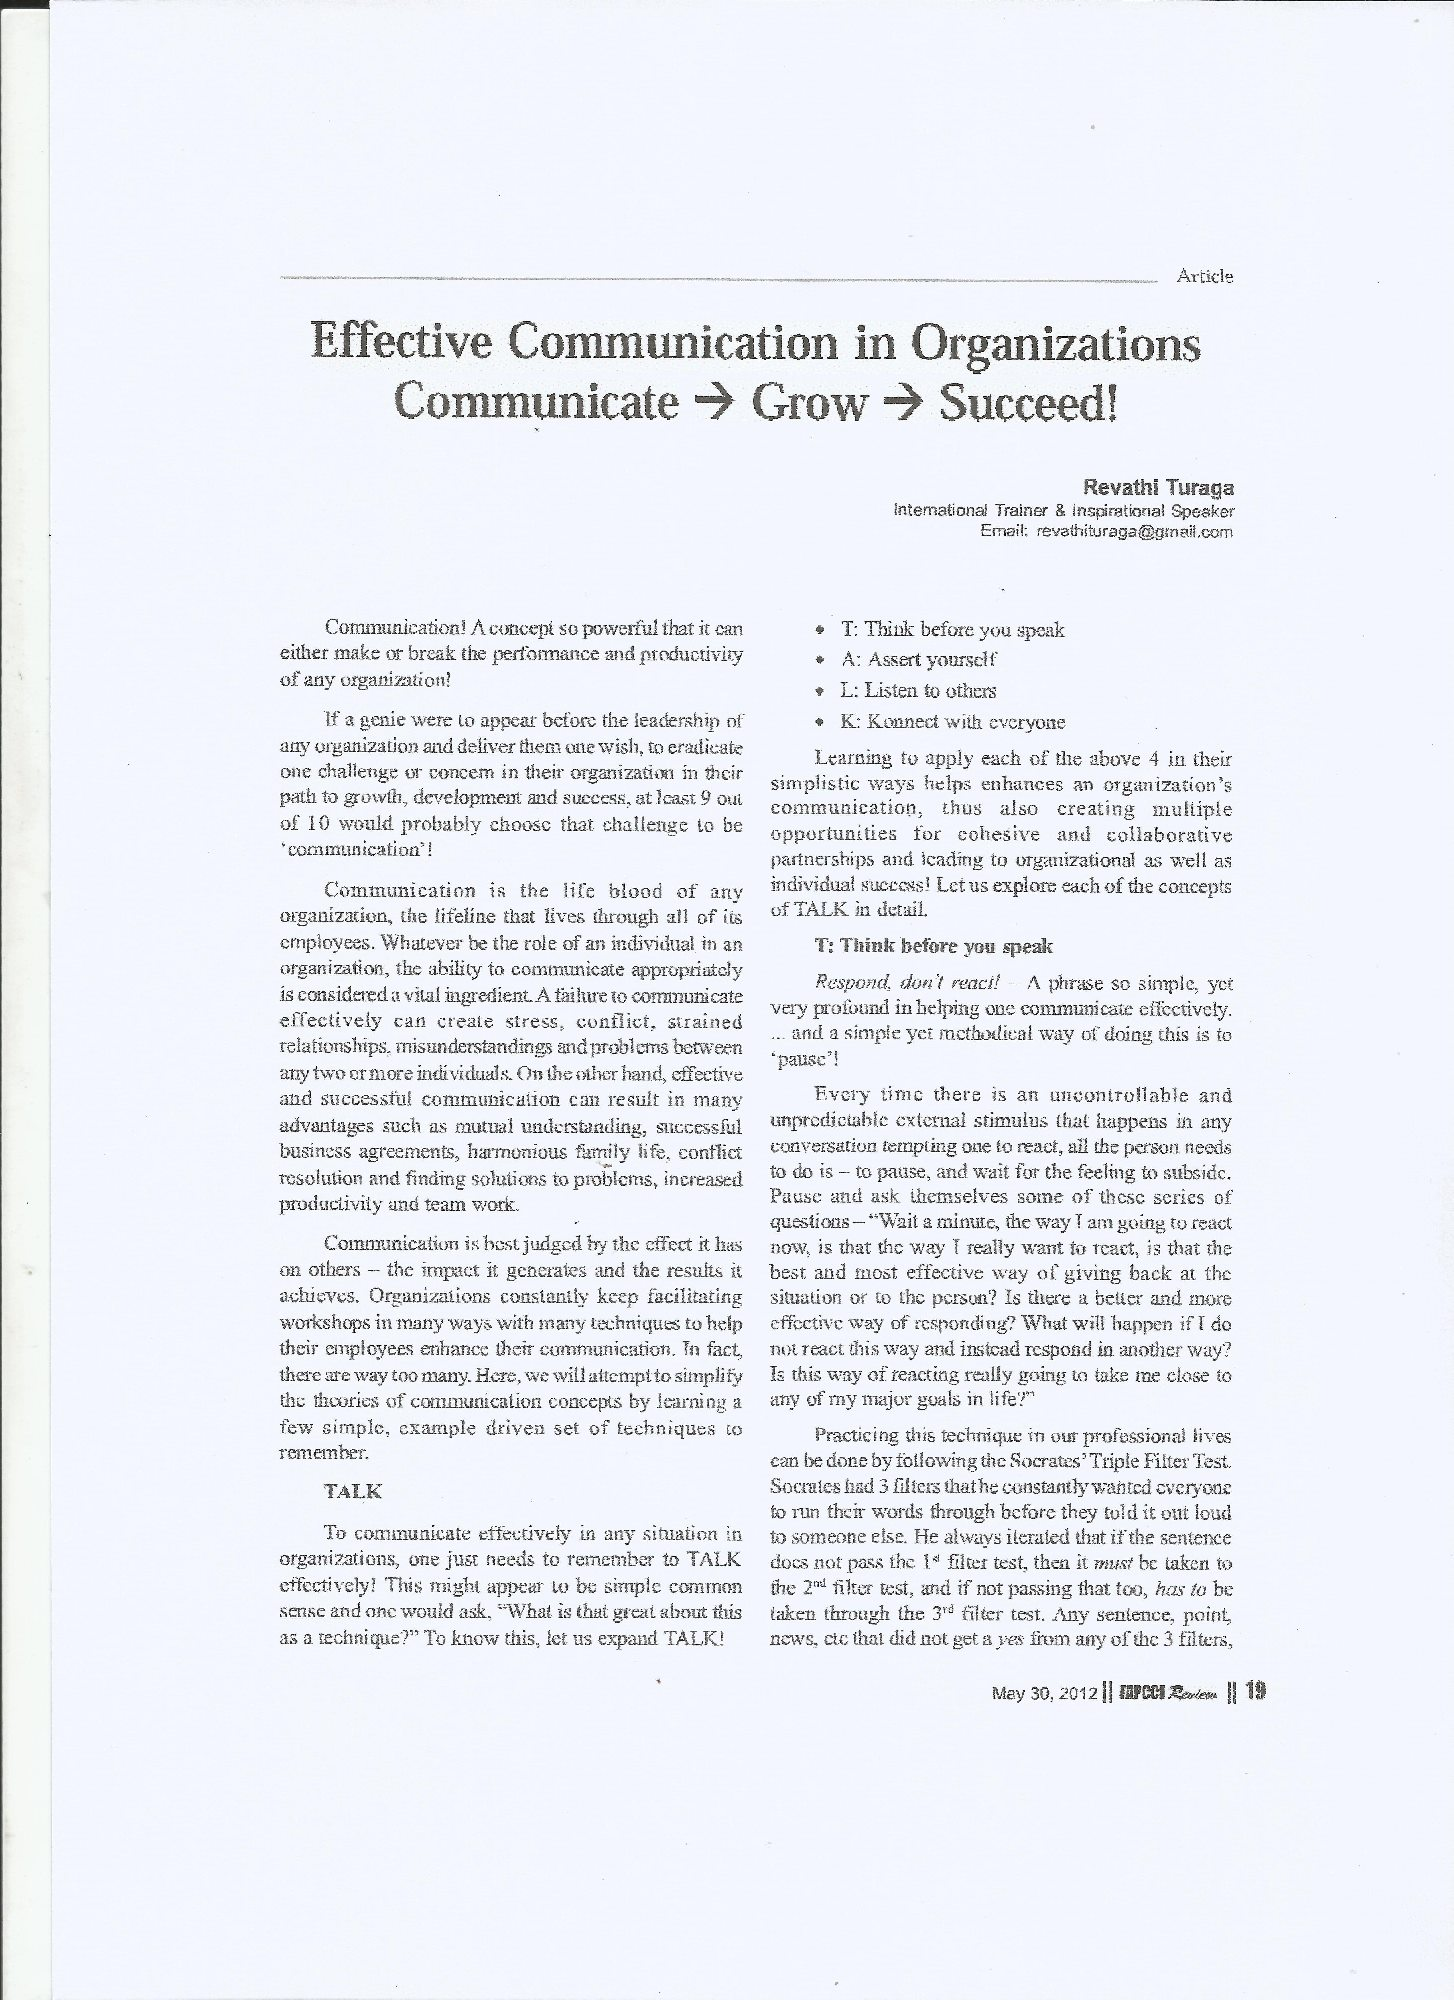 08-faptcci-communication-page-1-min